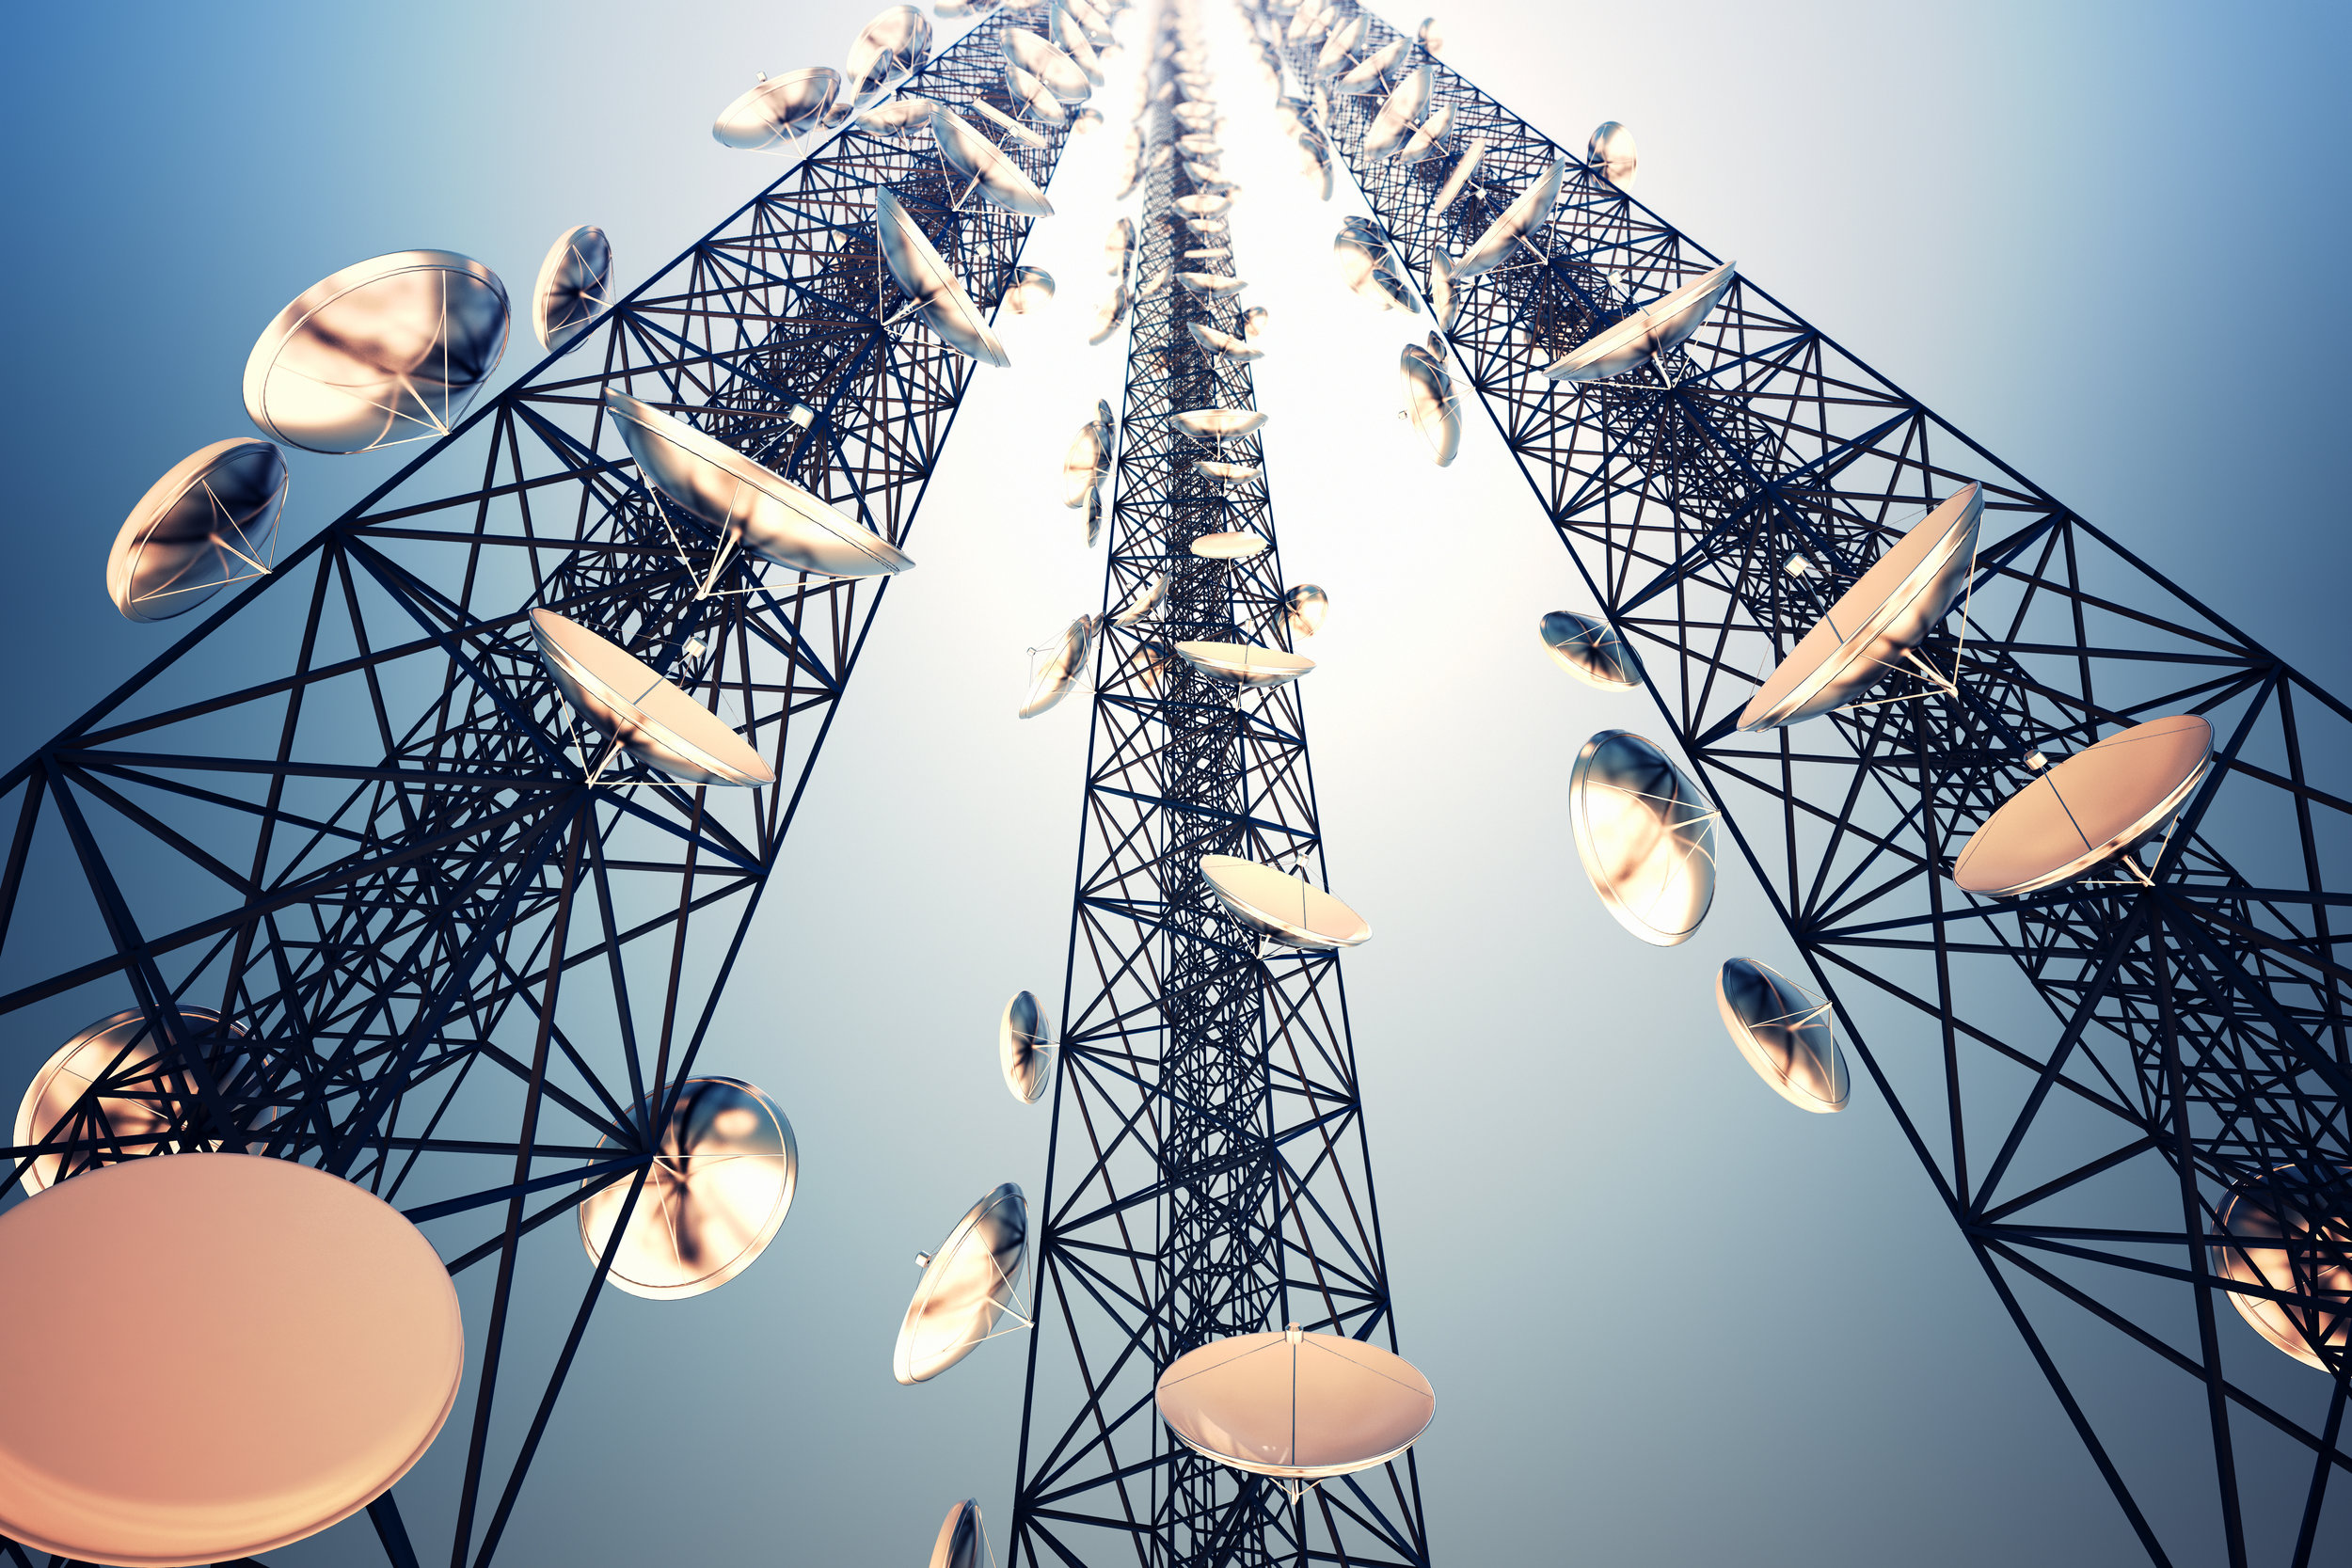 Telecoms tower with dishes above telco cooling by EcoCooling